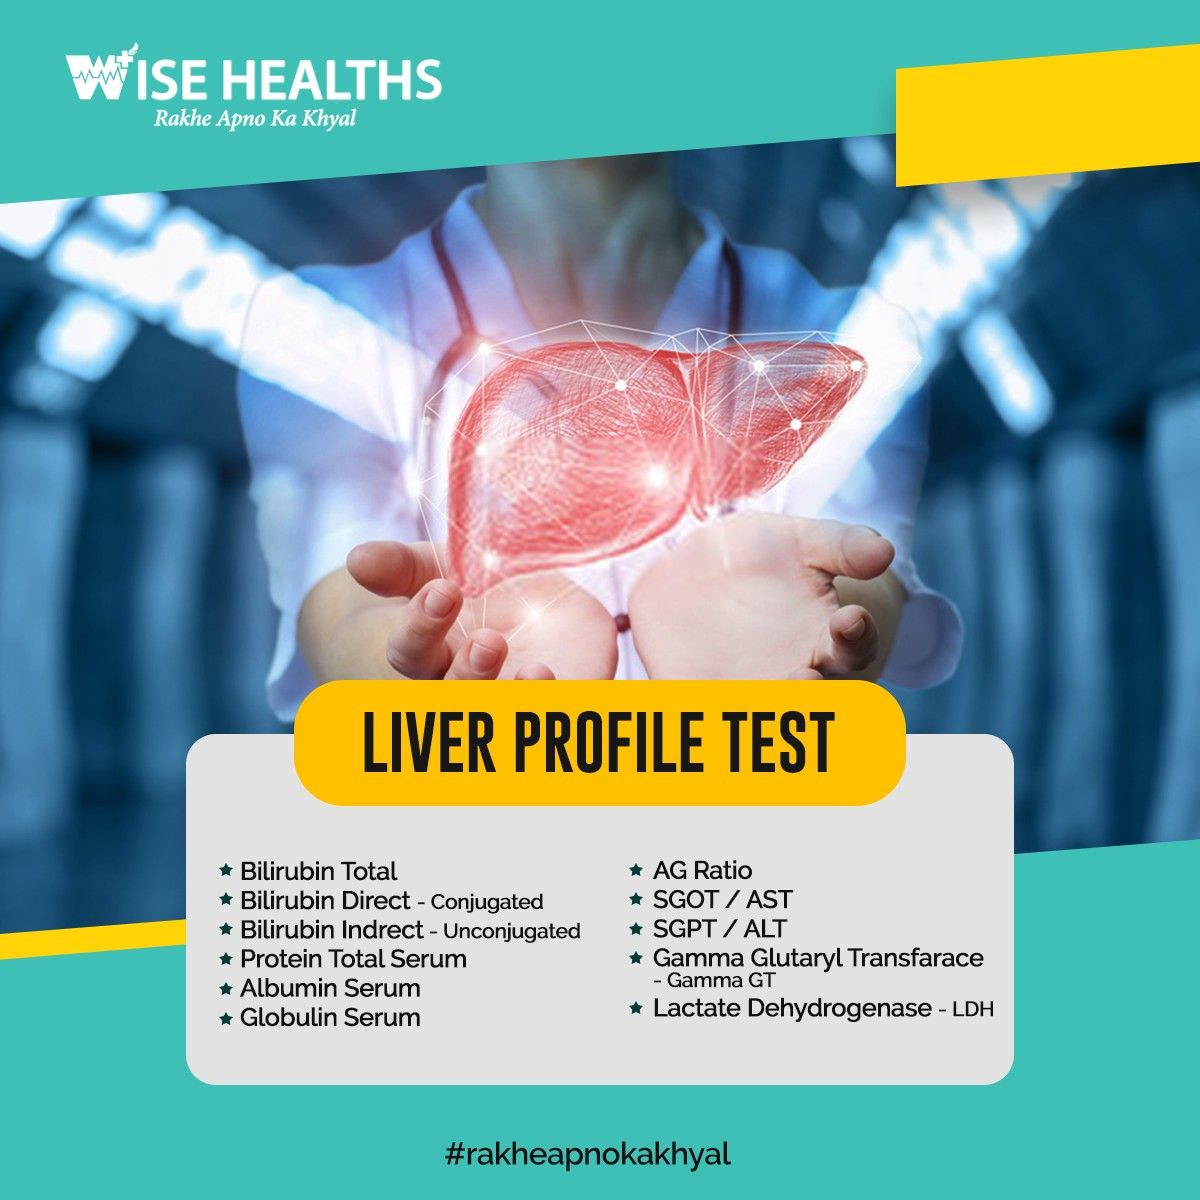 Track The Liver Functioning Of Your Body Health Tech Digital Health Health And Wellness